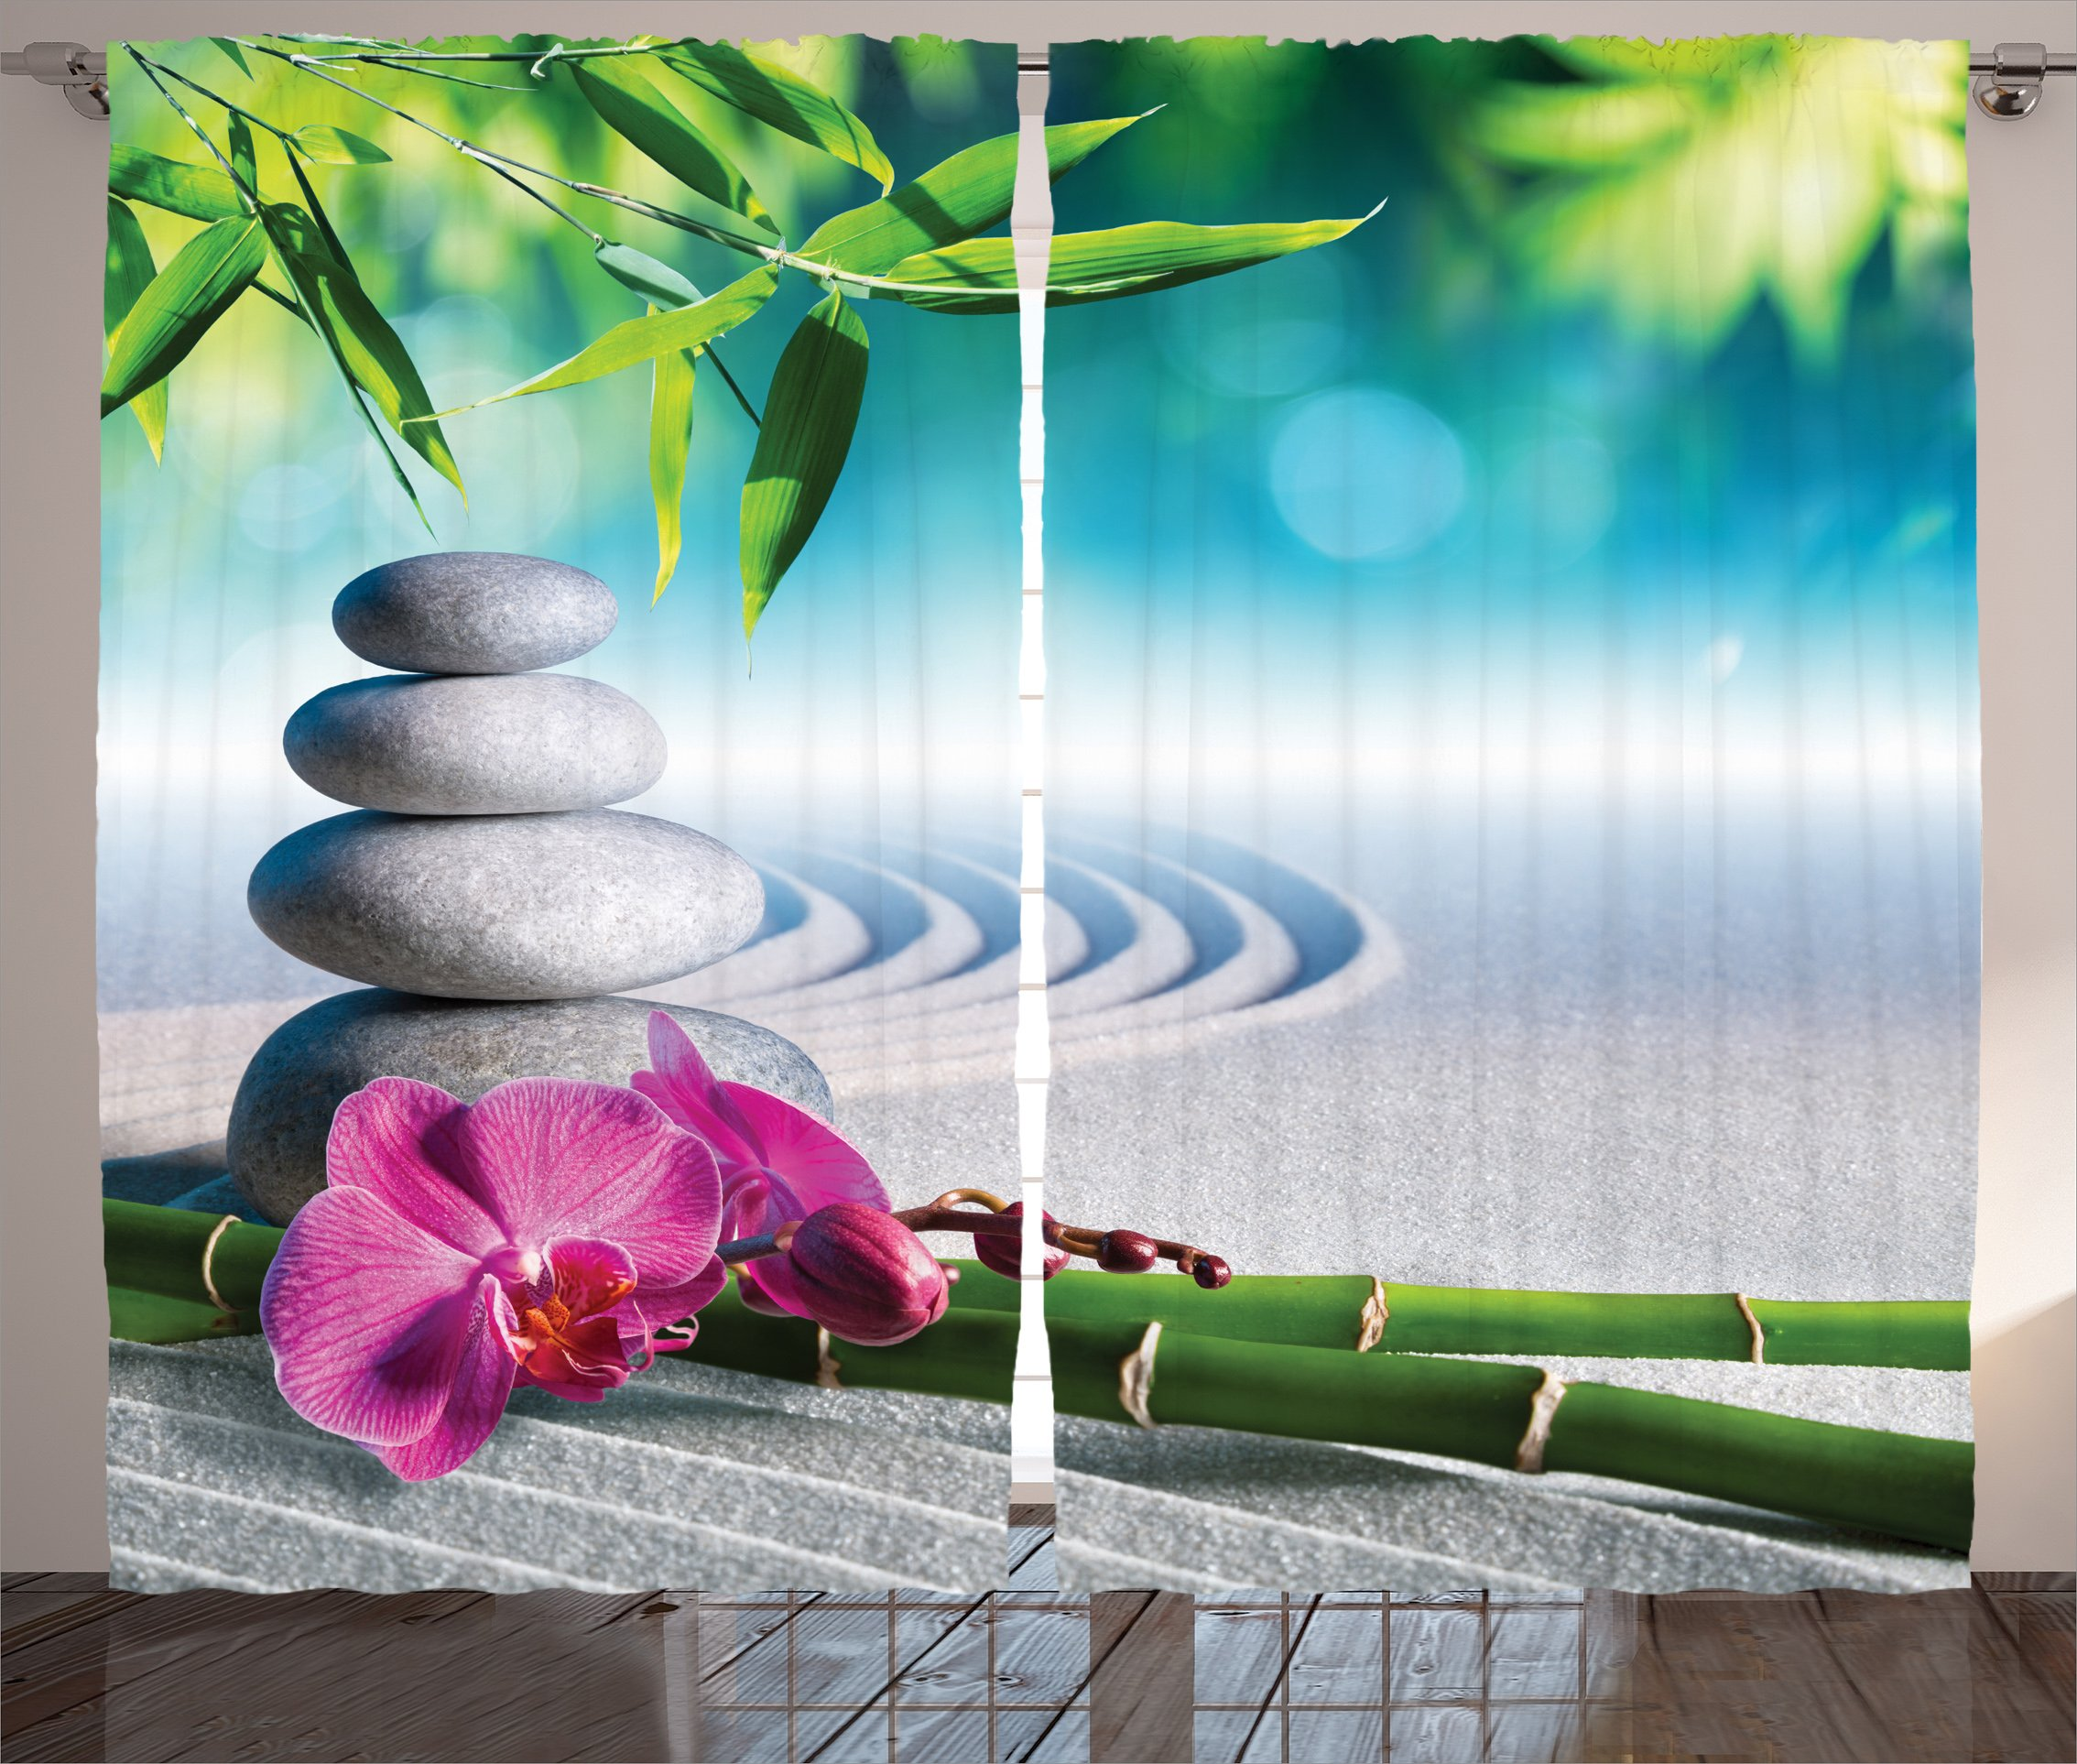 Ambesonne Spa Decor Curtains By, Sand Orchid And Massage Stones In Zen Garden Sunny Day Meditation, Living Room Bedroom Decor, 2 Panel Set, 108 W X 84 L Inches